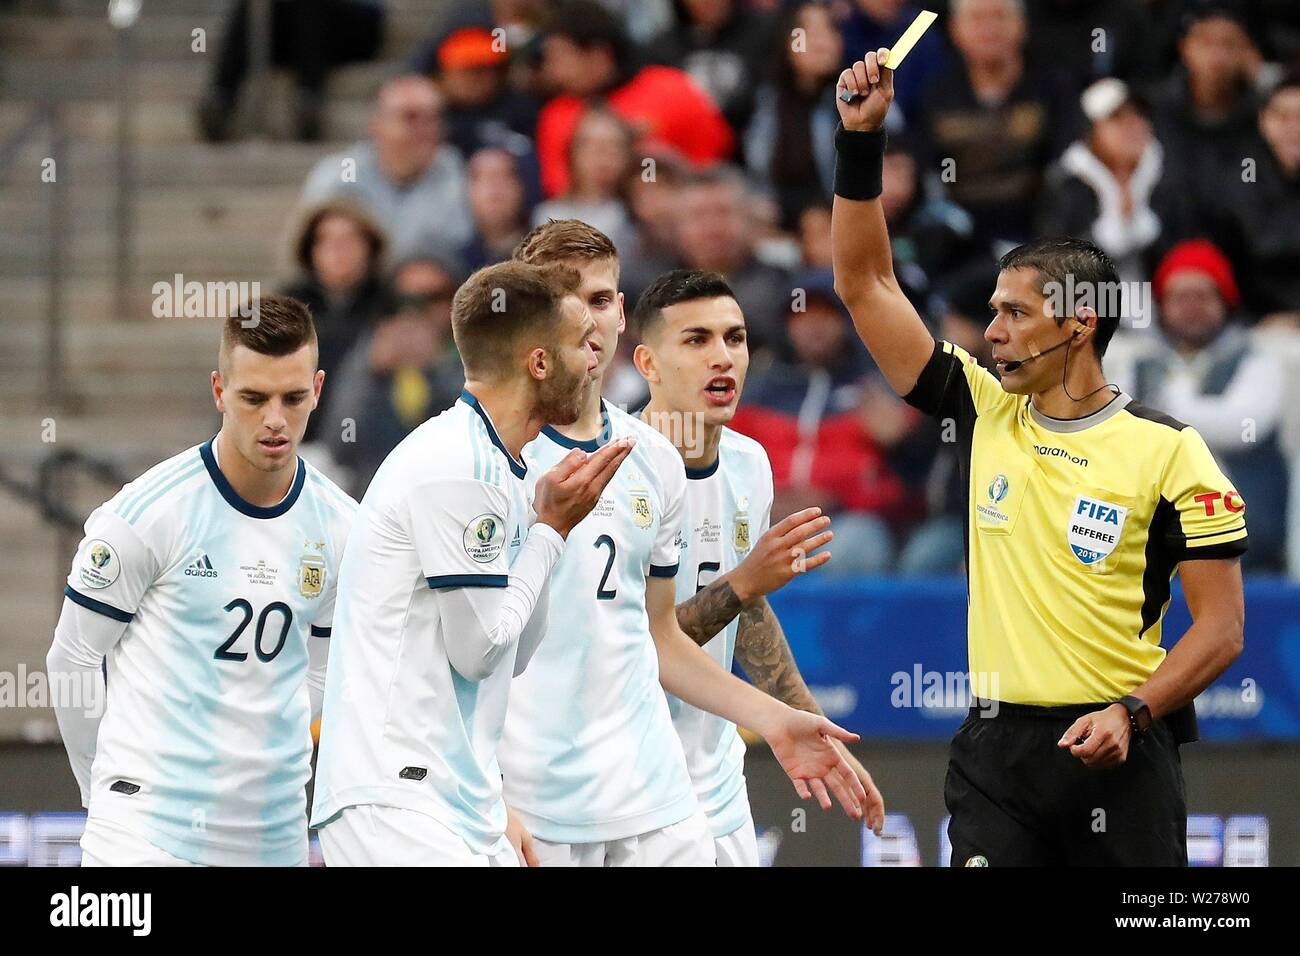 Sao Paulo, Brazil. 06th July, 2019. Argentinian players argue with the referee as he shows a yellow card, during the Copa America 2019 3rd place soccer match between Argentina and Chile, at Arena Corinthians Stadium in Sao Paulo, Brazil, 6 July 2019. Credit: Sebastiao Moreira/EFE/Alamy Live News - Stock Image